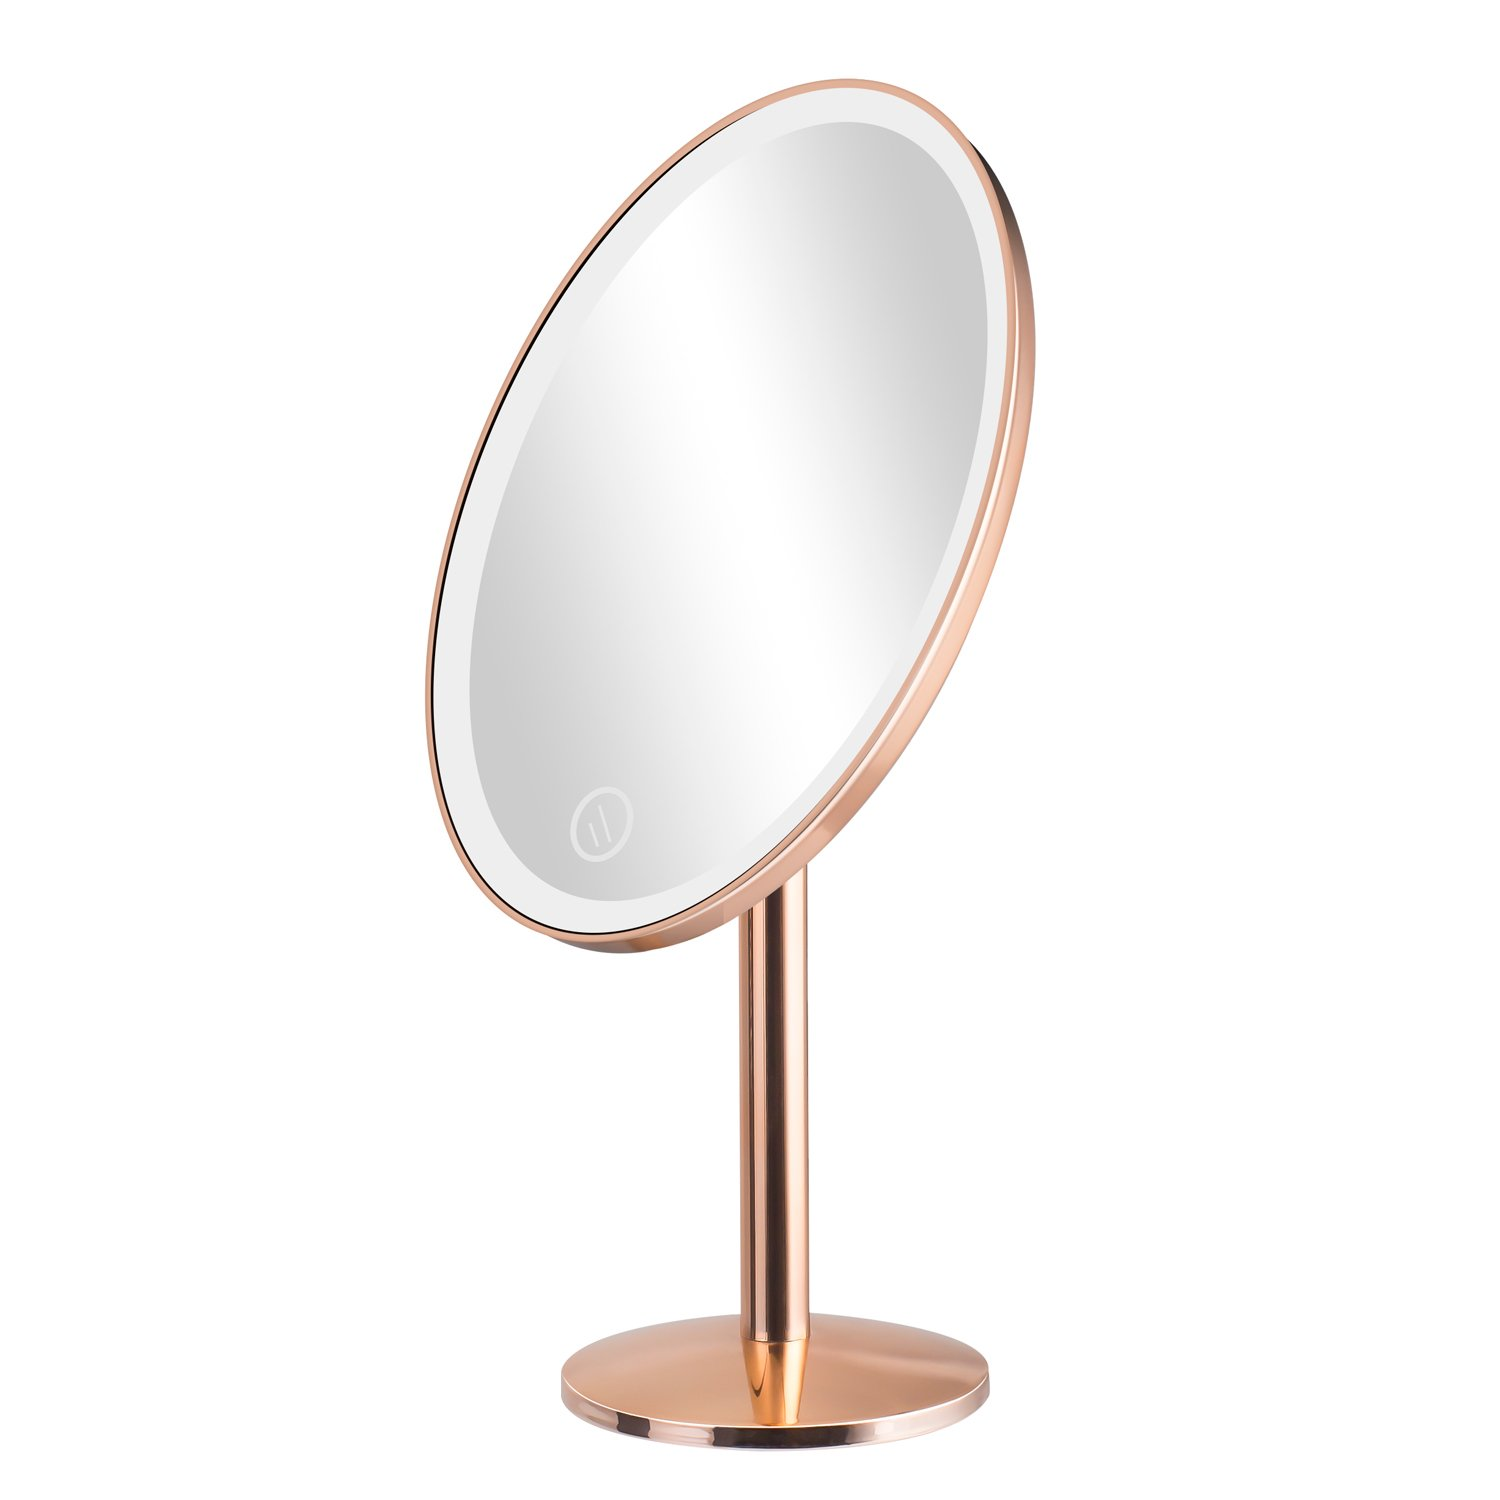 Elgood Lighted Vanity Makeup Mirror with 25 Led Lights Touch Screen 180 Degree Free Rotation Table Countertop for Grils Women Men Cosmetic (Rose Gold)